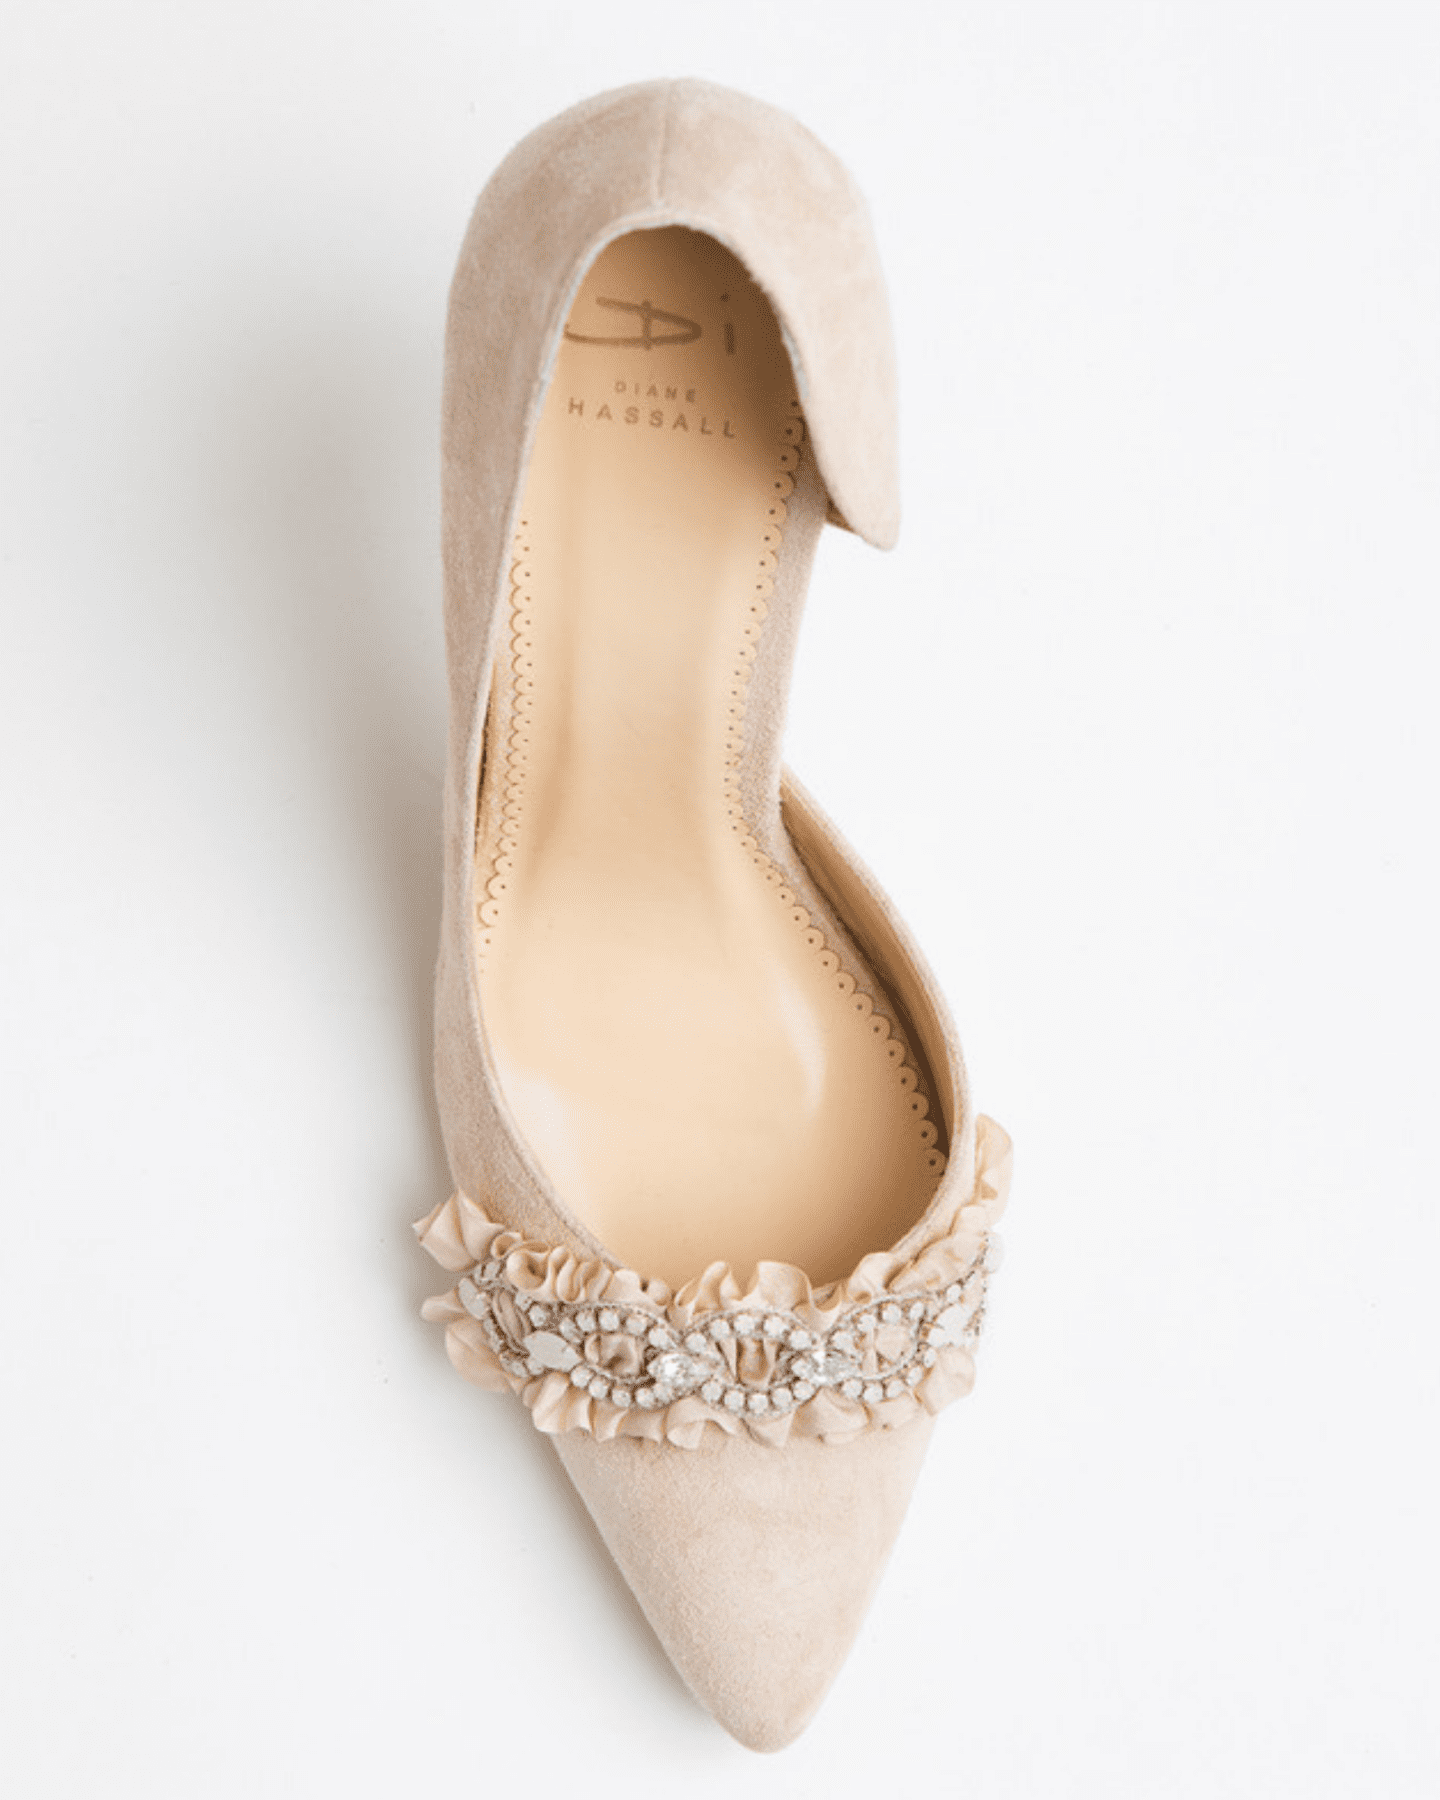 Diane Hassall bridal wedding shoes china doll at Boho Bride boutique